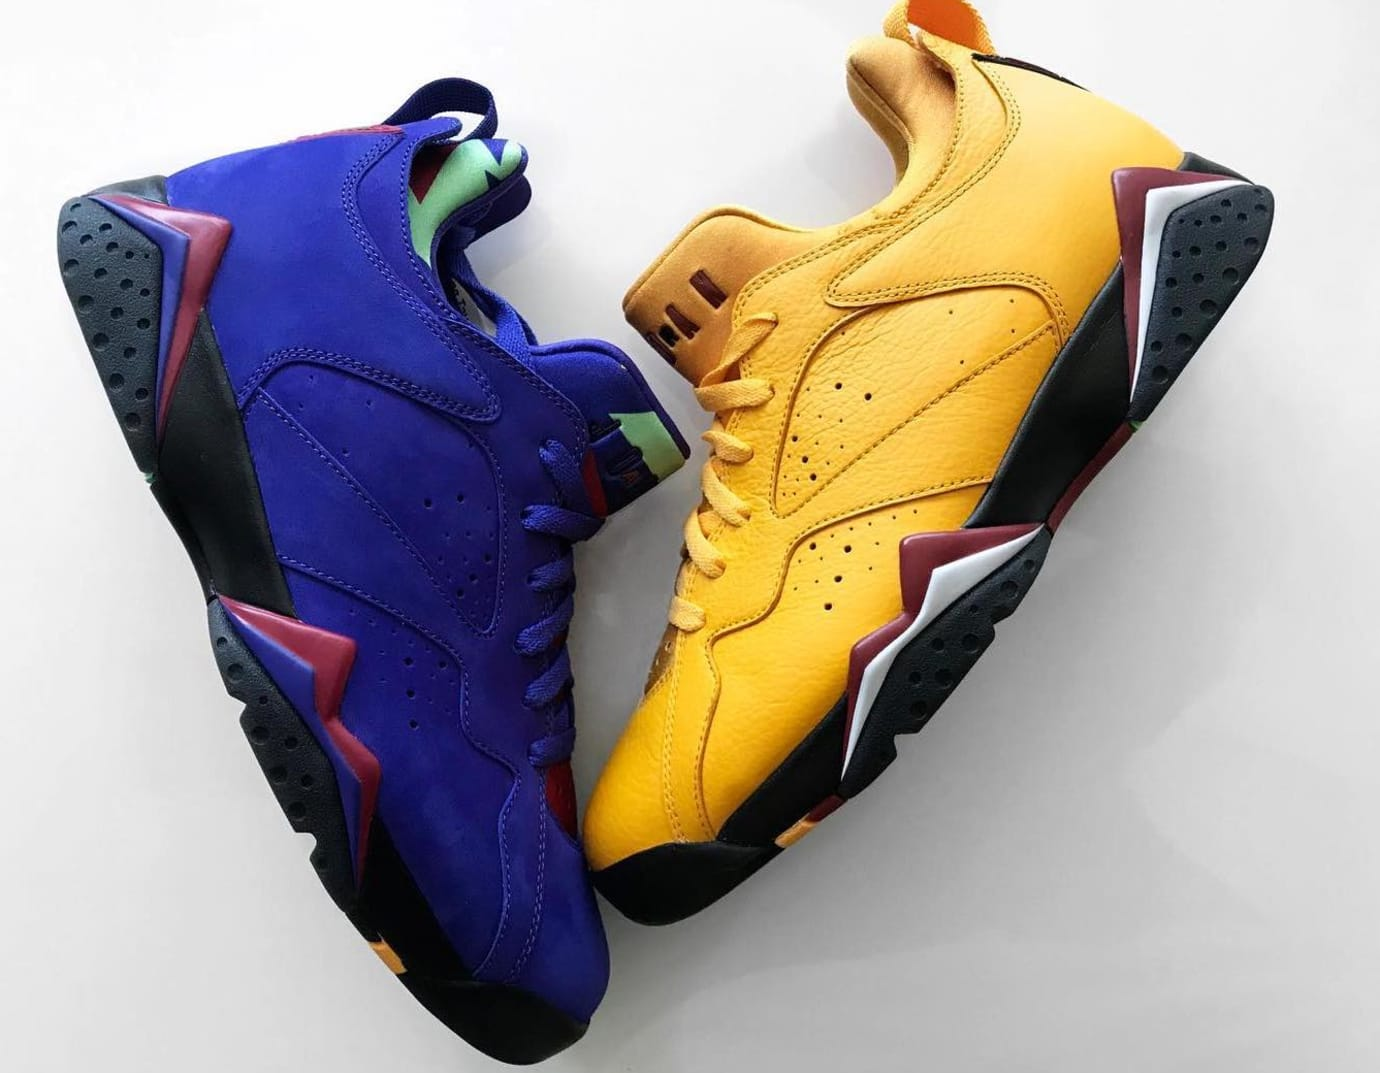 Air Jordan 7 Low NRG 'Bright Concord' and 'Taxi'